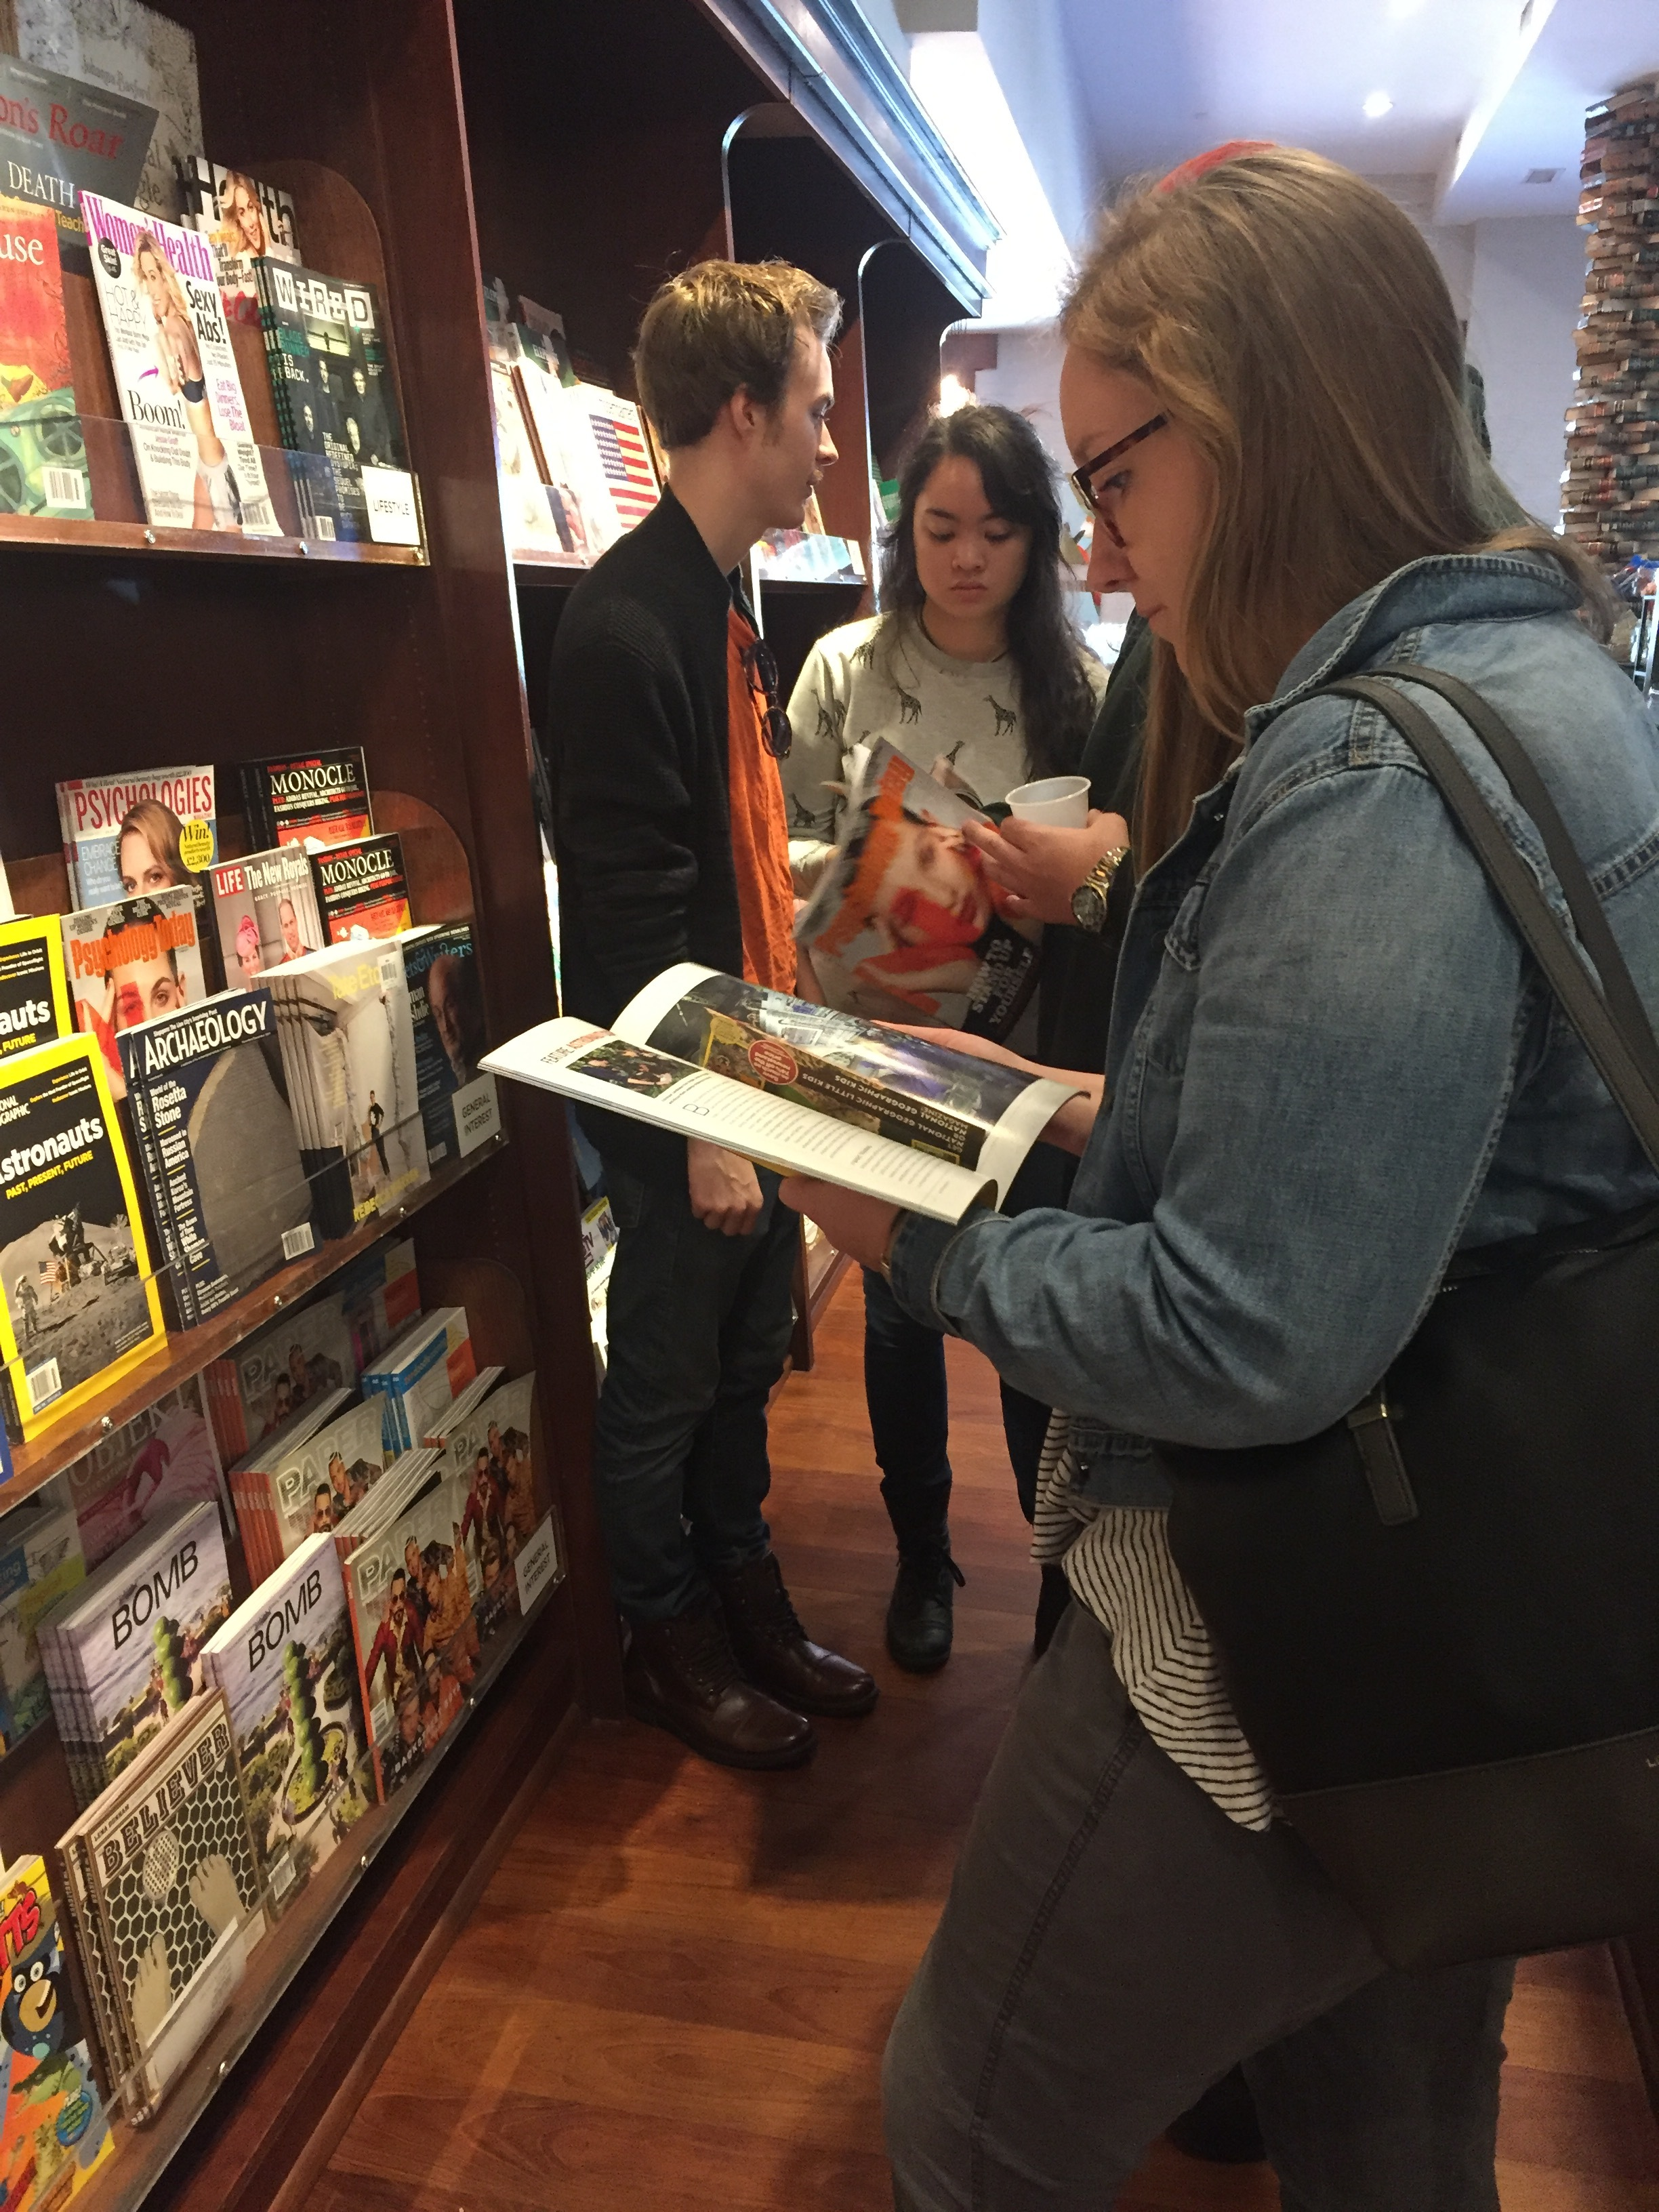 Our team at the bookstore analyzing magazine formatting for us to remember when designing our own with the final insights.